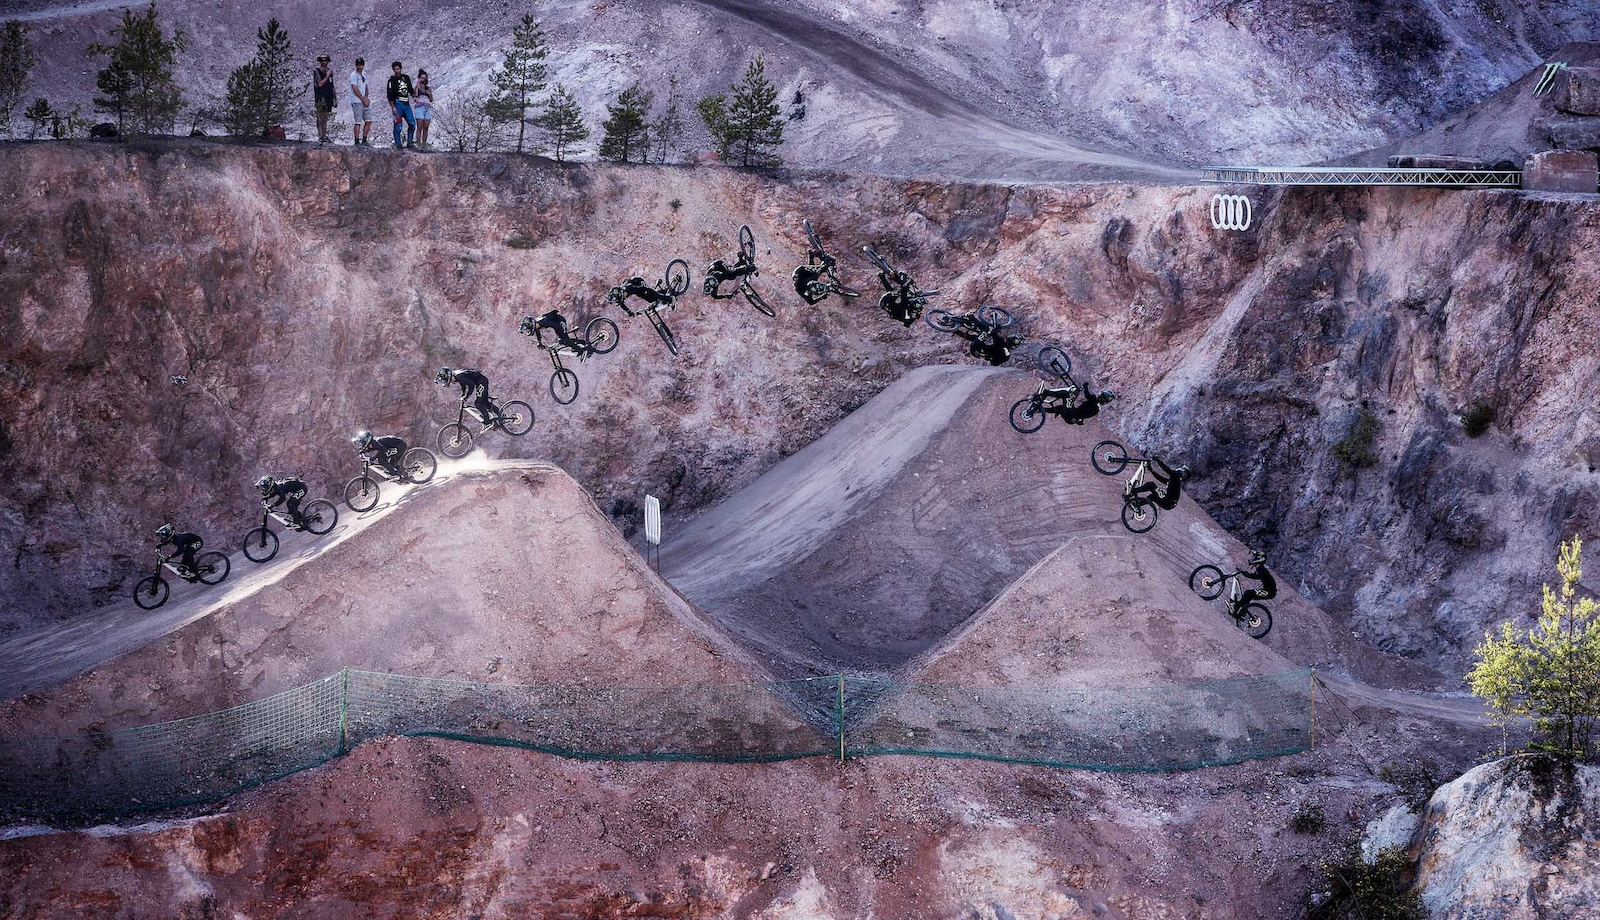 Ethan Nell was definitely one of the most stylish guys riding the quarry. Here he is with a classic Ethan Nell Flatspin look-back mid freeride line.